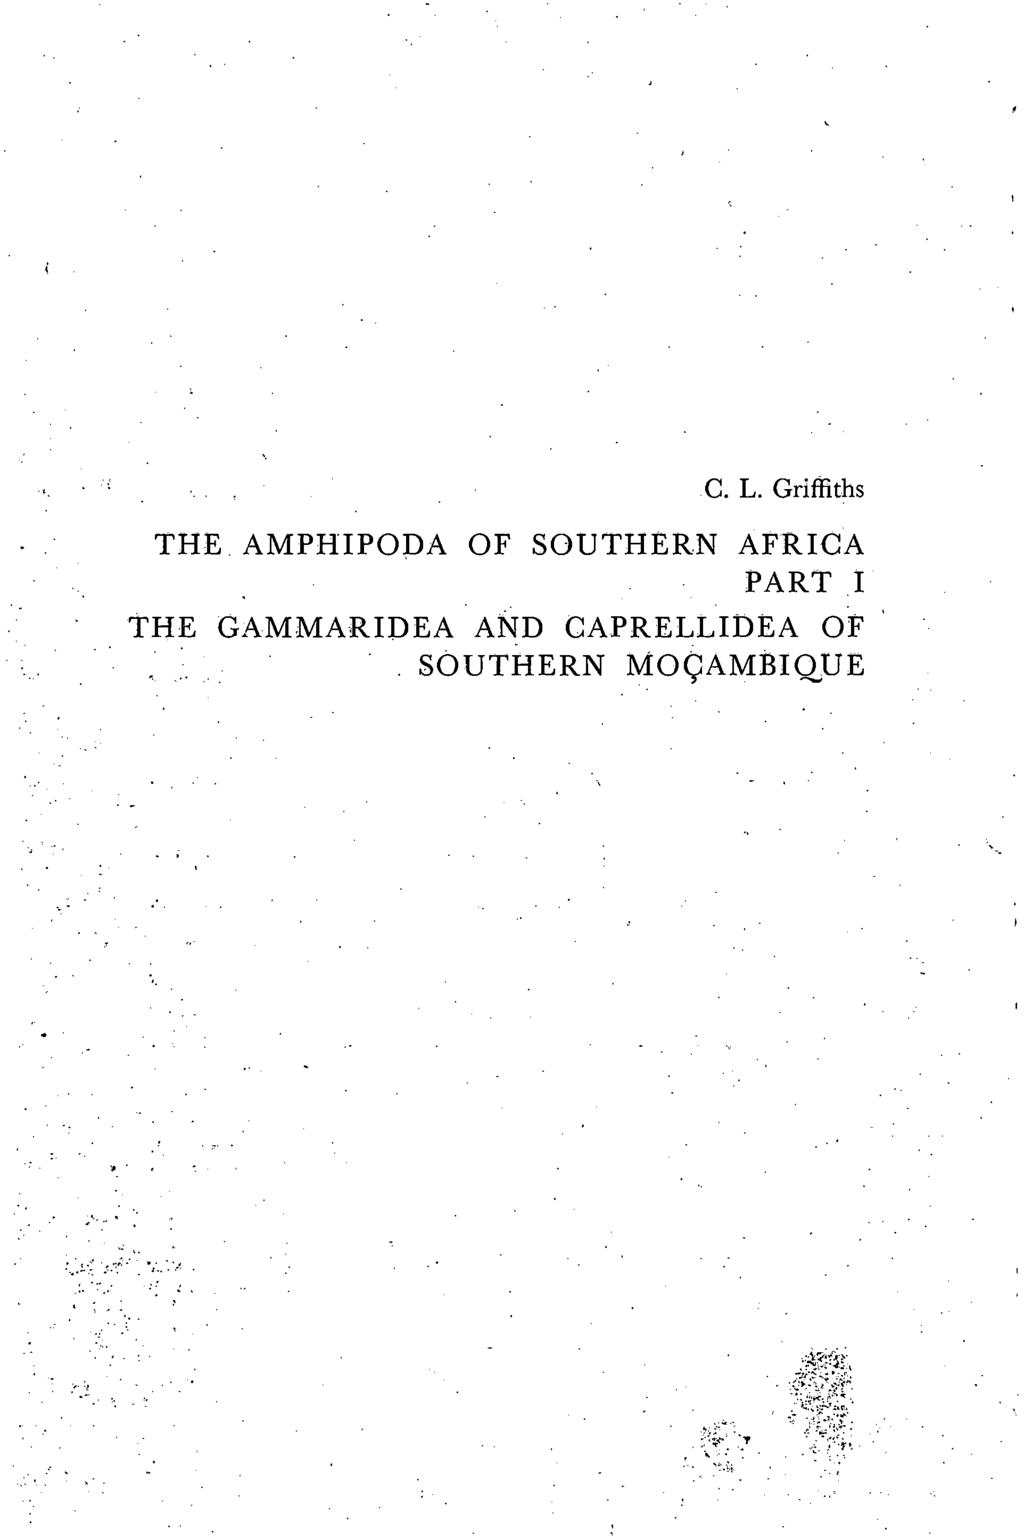 c. L. Griffiths THE, AMPHIPODA OF SOUTHERN AFRICA PART I,, THE GAMMARIDEA AND